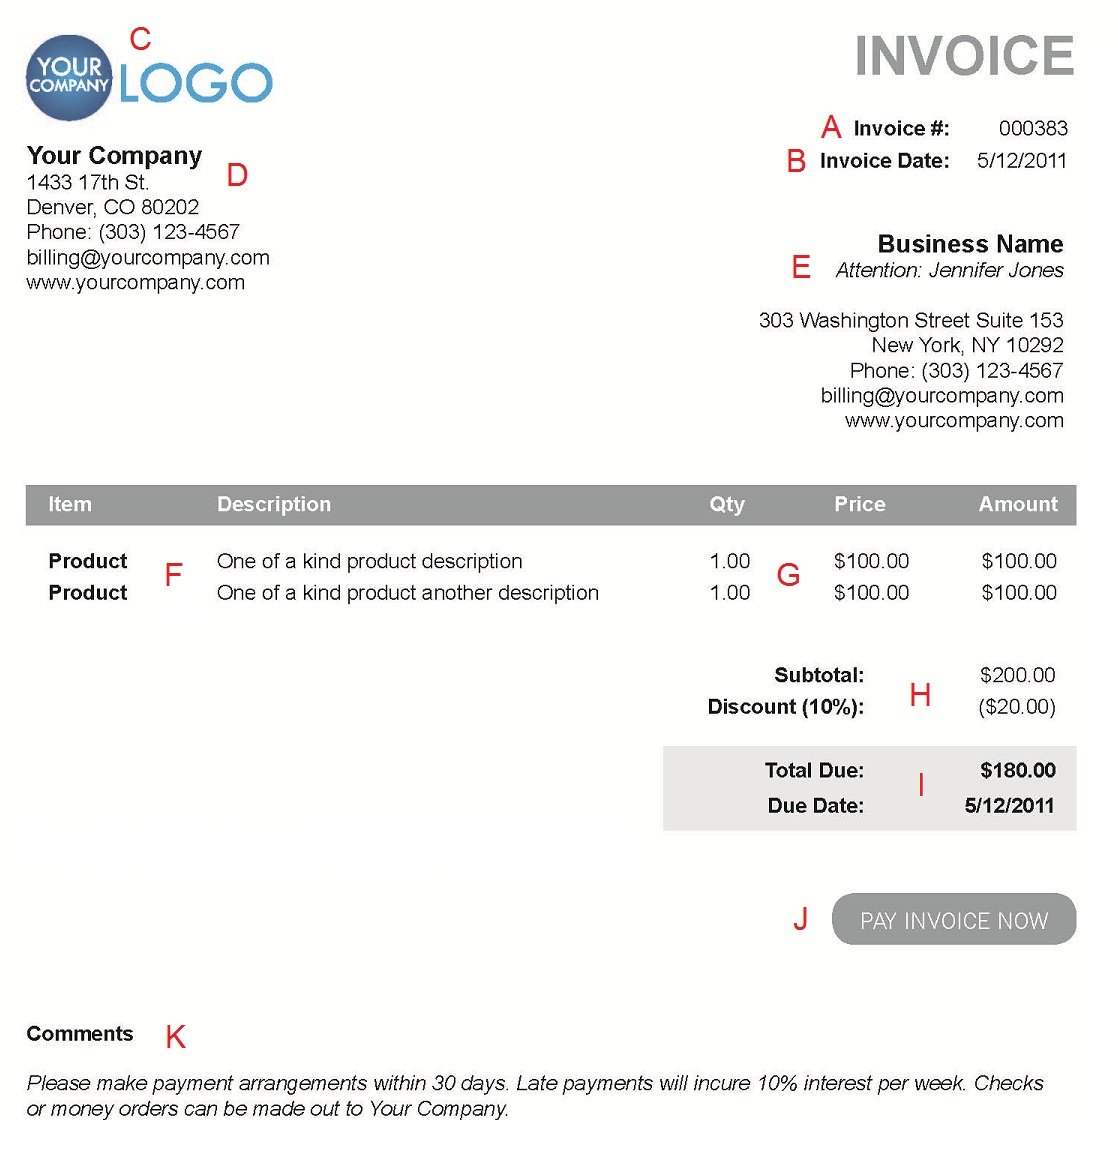 Centralasianshepherdus  Scenic The  Different Sections Of An Electronic Payment Invoice With Handsome A  With Charming Cloud Invoicing Also Small Business Invoice In Addition Invoice Statement Template And Toyota Tacoma Invoice Price As Well As Pay Ebay Invoice Additionally Microsoft Word Invoice Templates From Paysimplecom With Centralasianshepherdus  Handsome The  Different Sections Of An Electronic Payment Invoice With Charming A  And Scenic Cloud Invoicing Also Small Business Invoice In Addition Invoice Statement Template From Paysimplecom